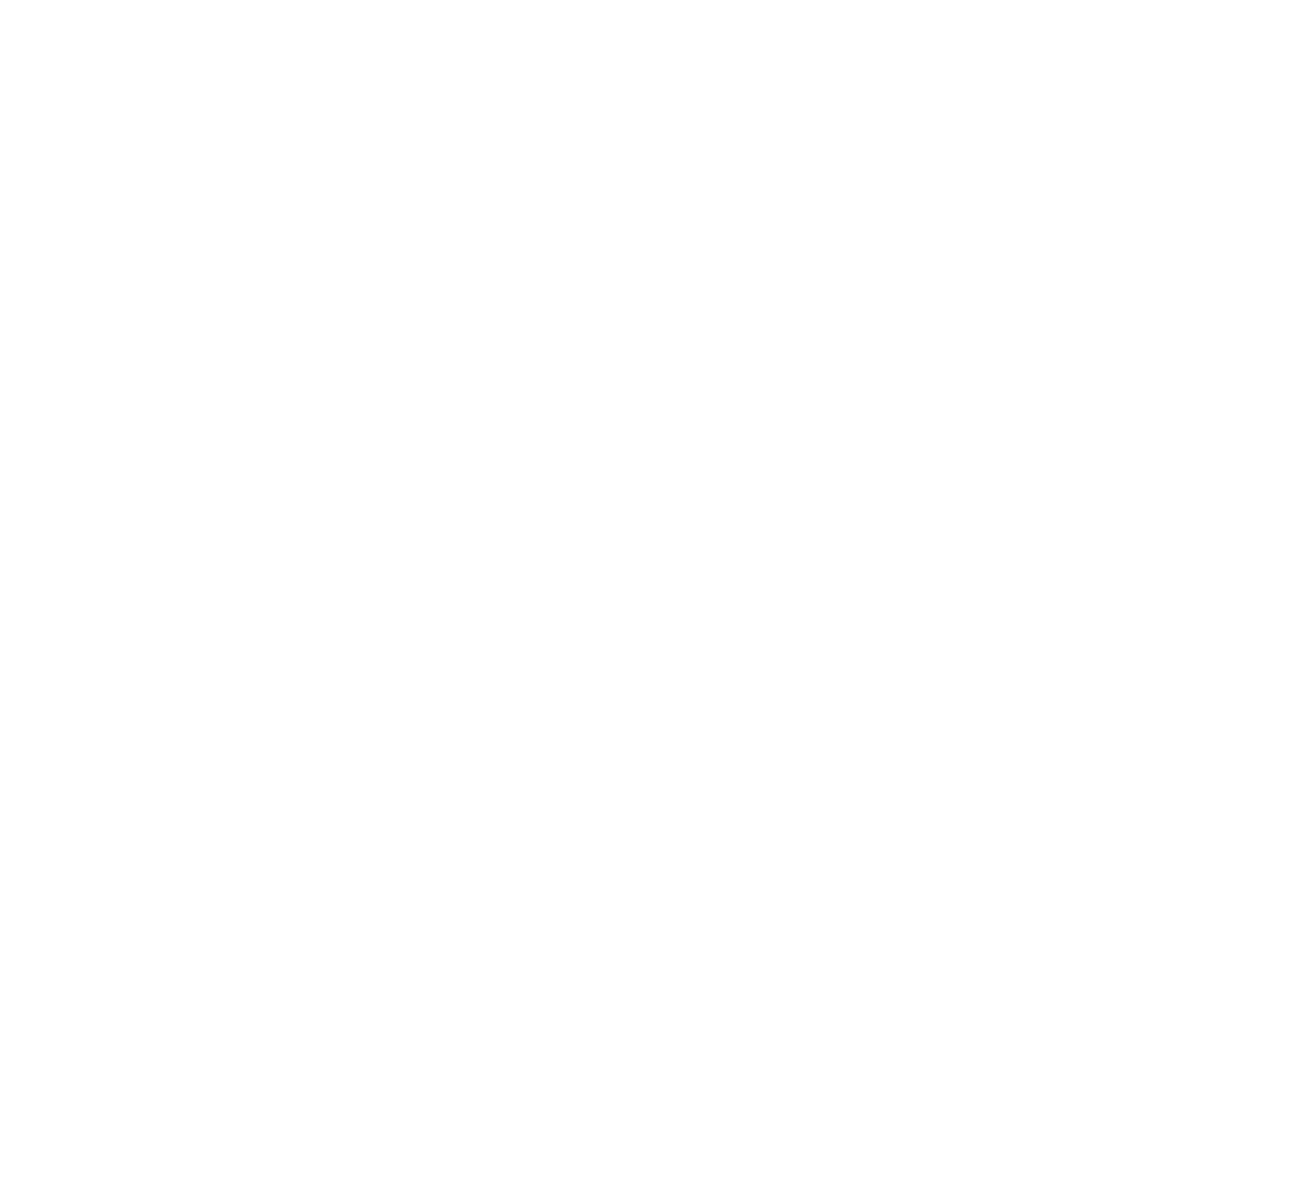 RecoveRE Holdings logo